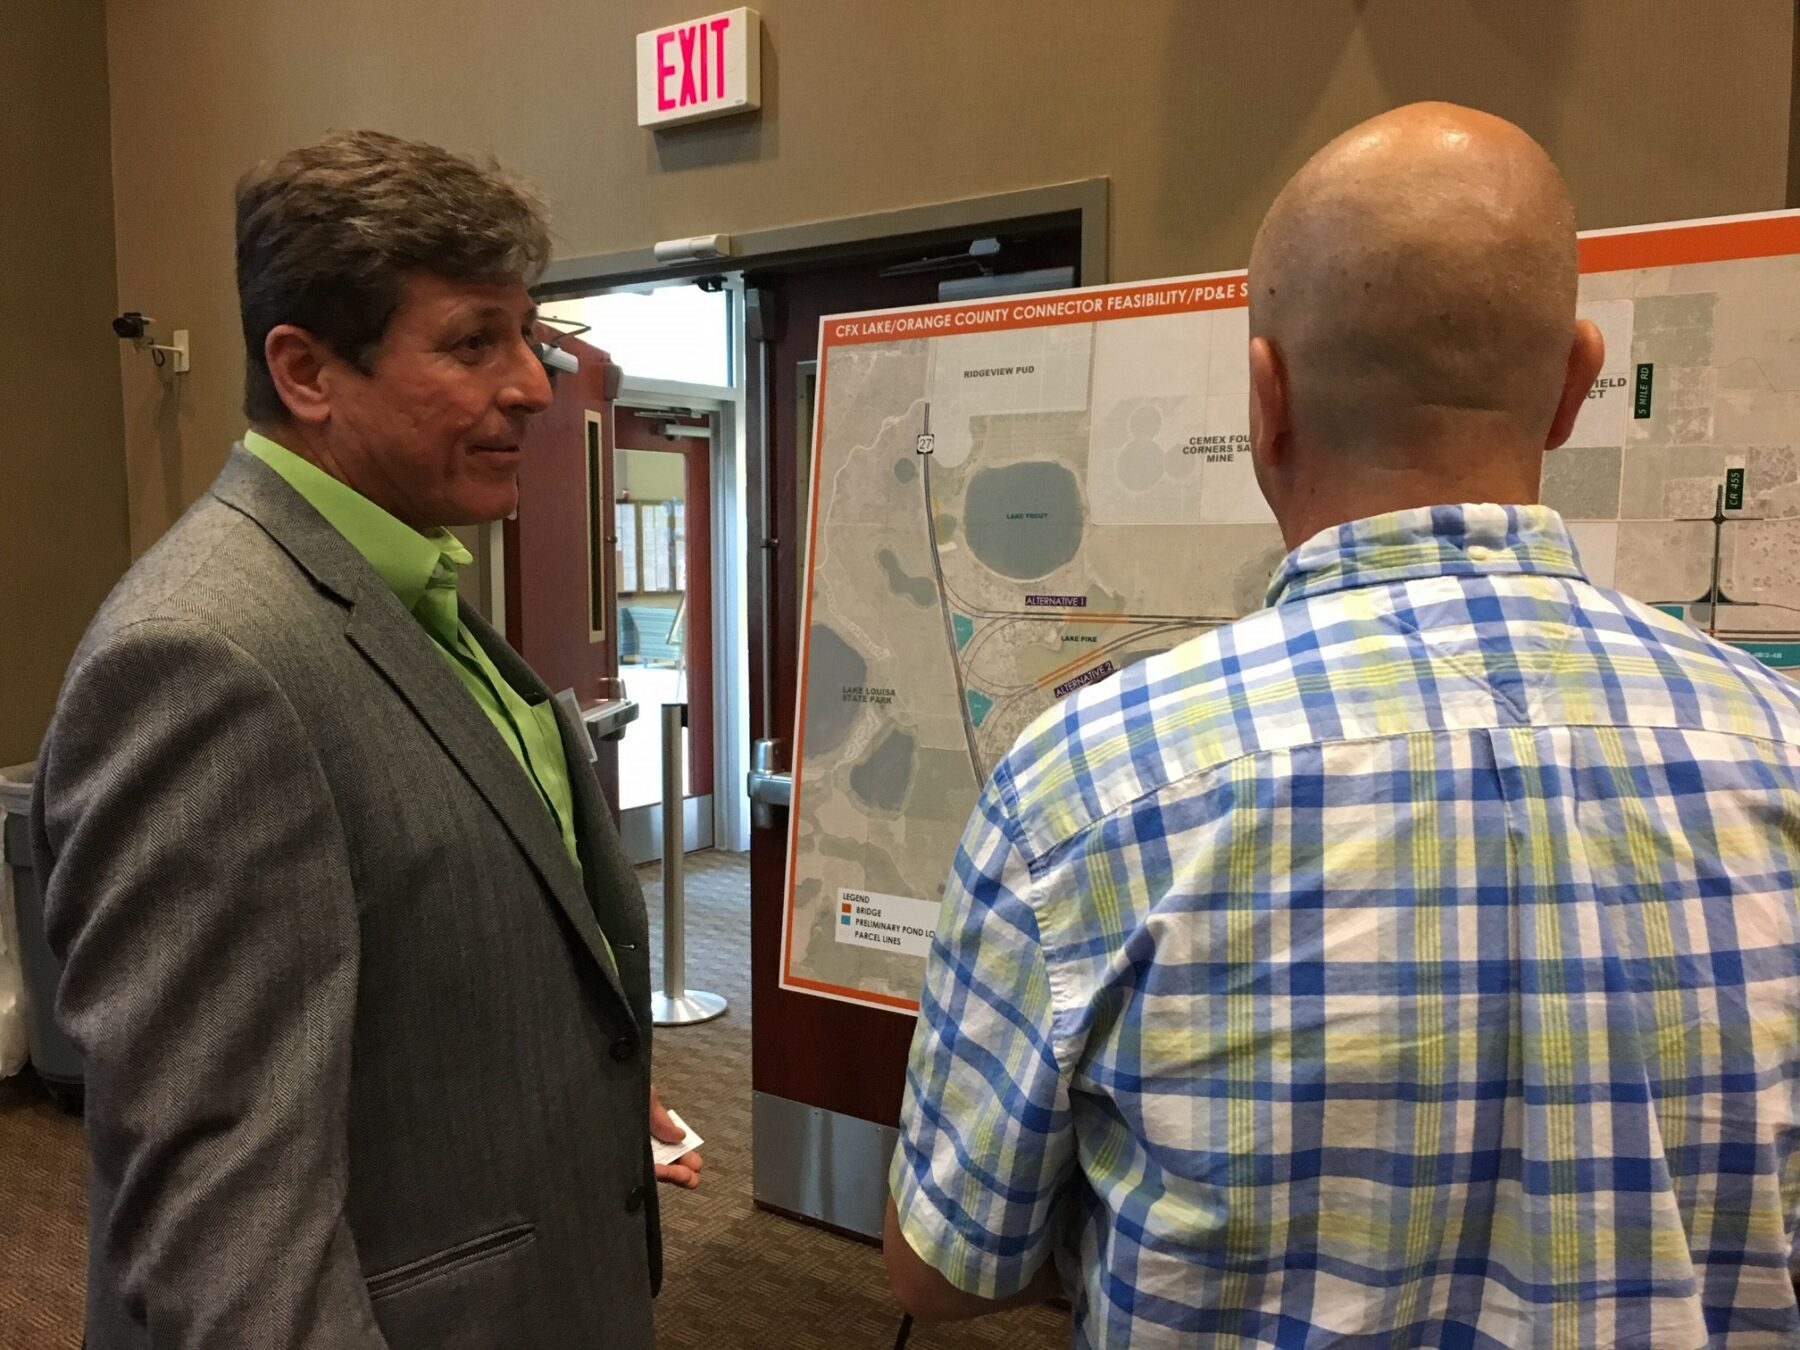 February 12, 2019 EAG meeting for the CFX Lake/Orange County Connector Feasibility/PD&E Study